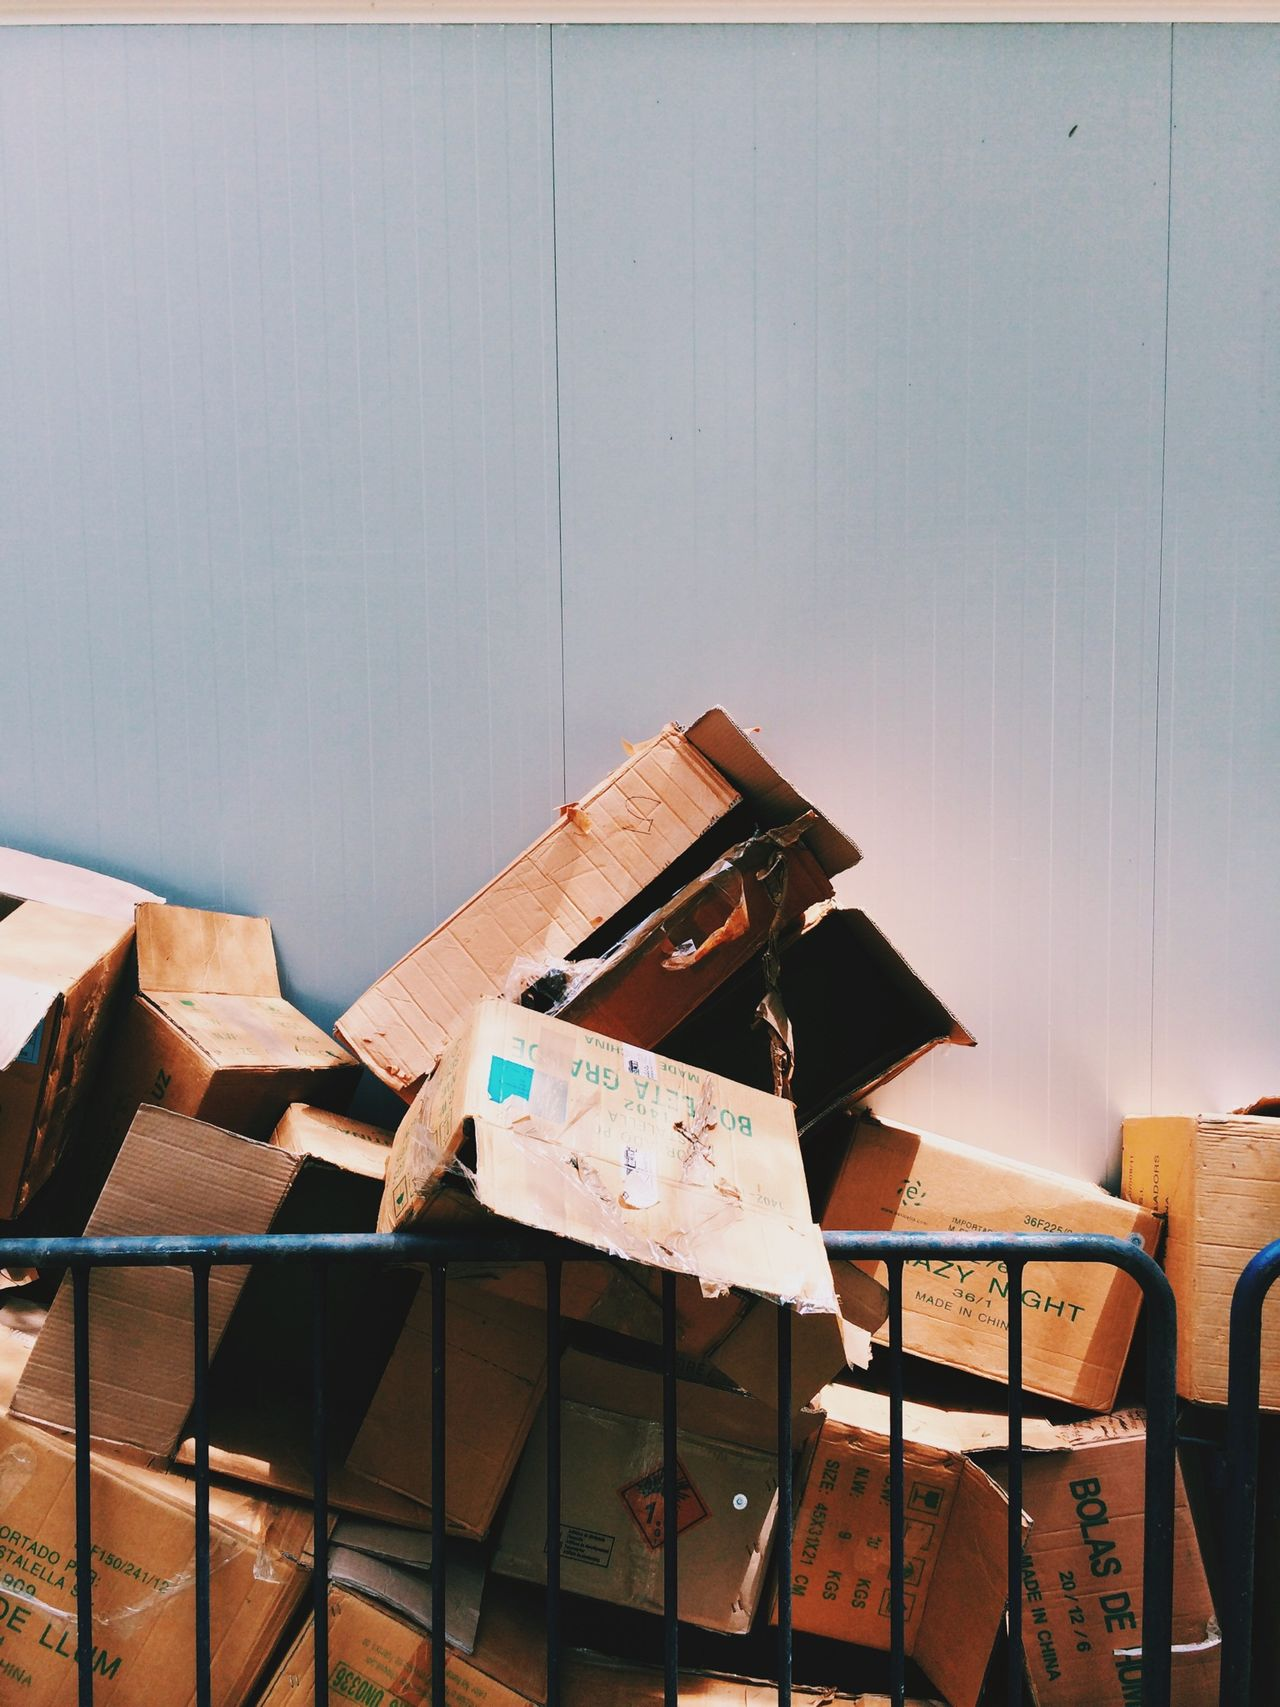 Beautiful stock photos of box, Abandoned, Bad Condition, Cardboard Box, Day